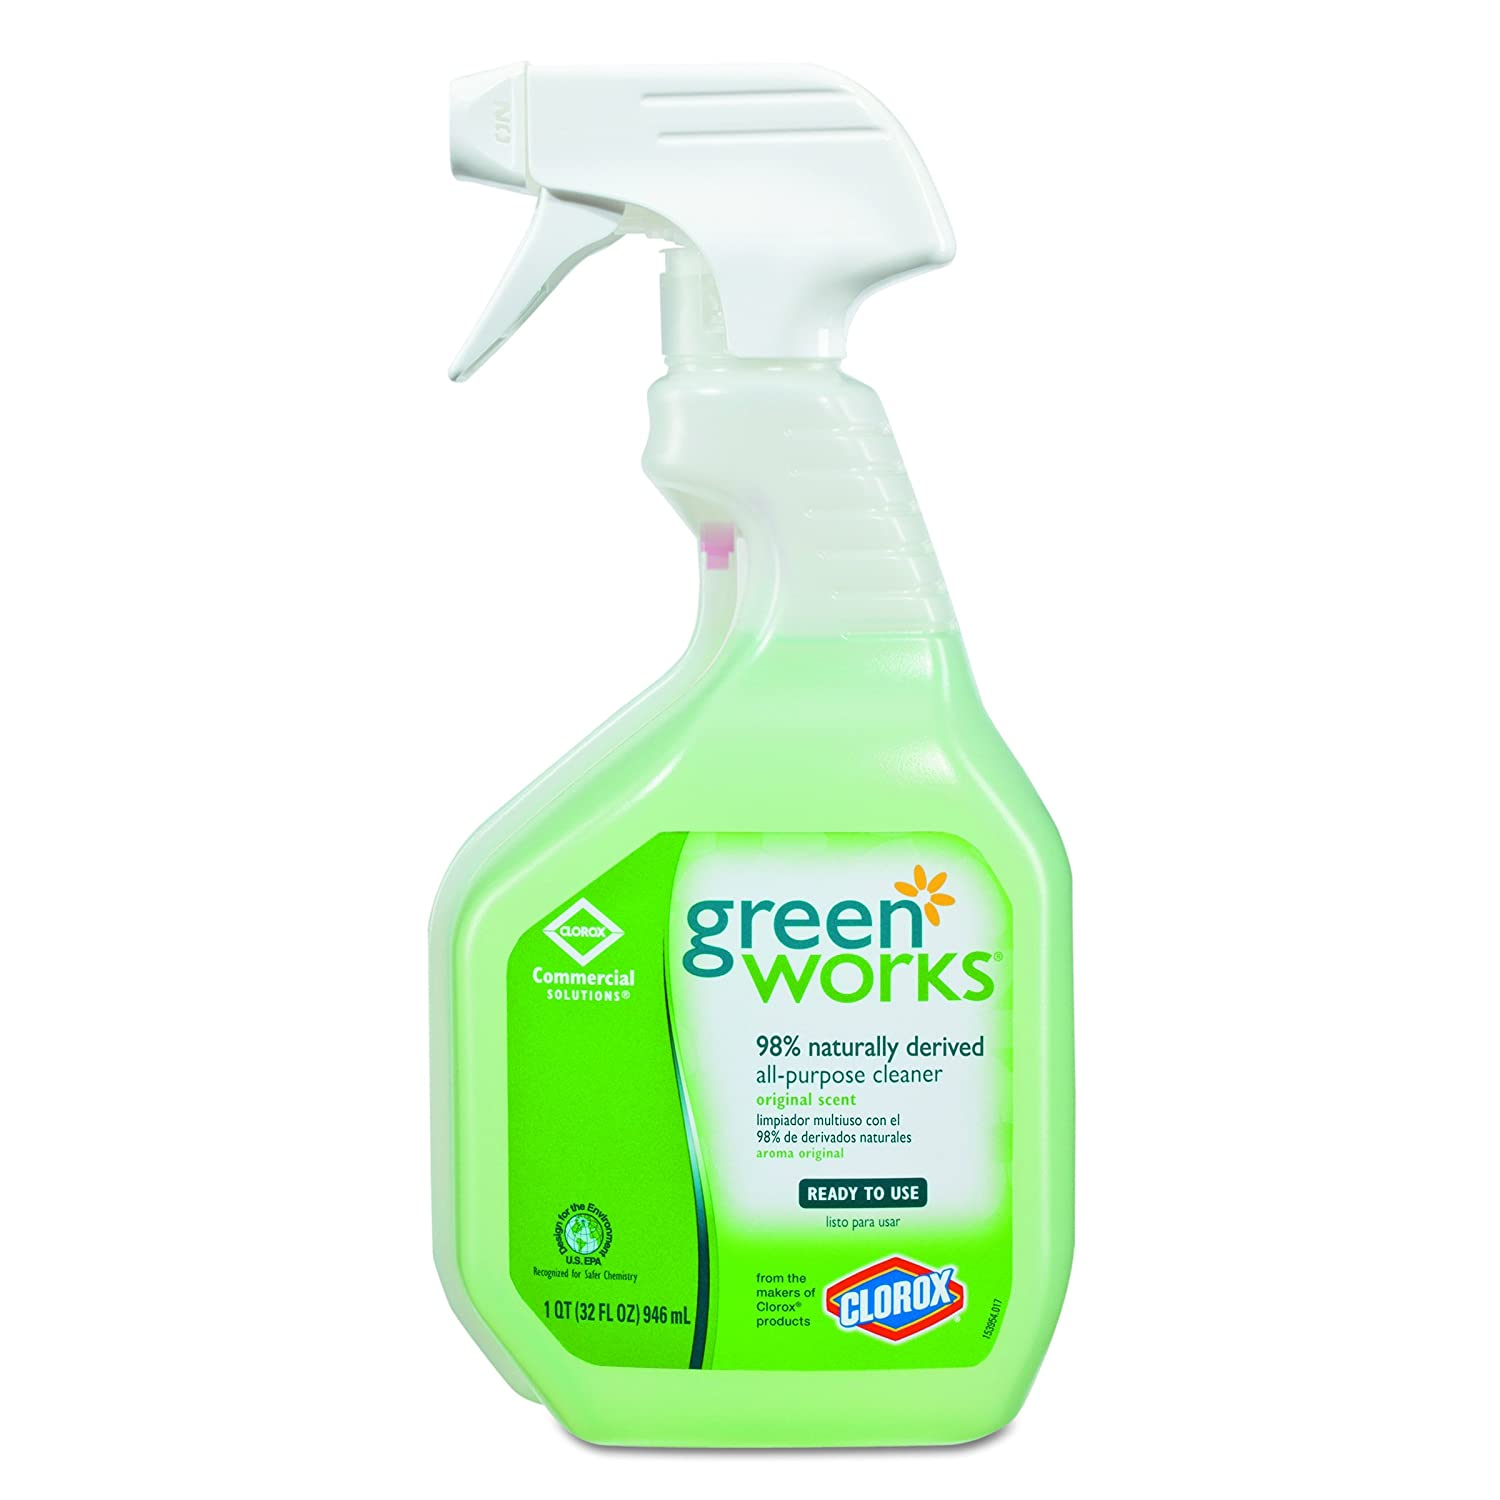 Green Works 00456CT All-Purpose and Multi-Surface Cleaner, Original, 32oz Smart Tube Spray Bottle (Case of 12 bottles)